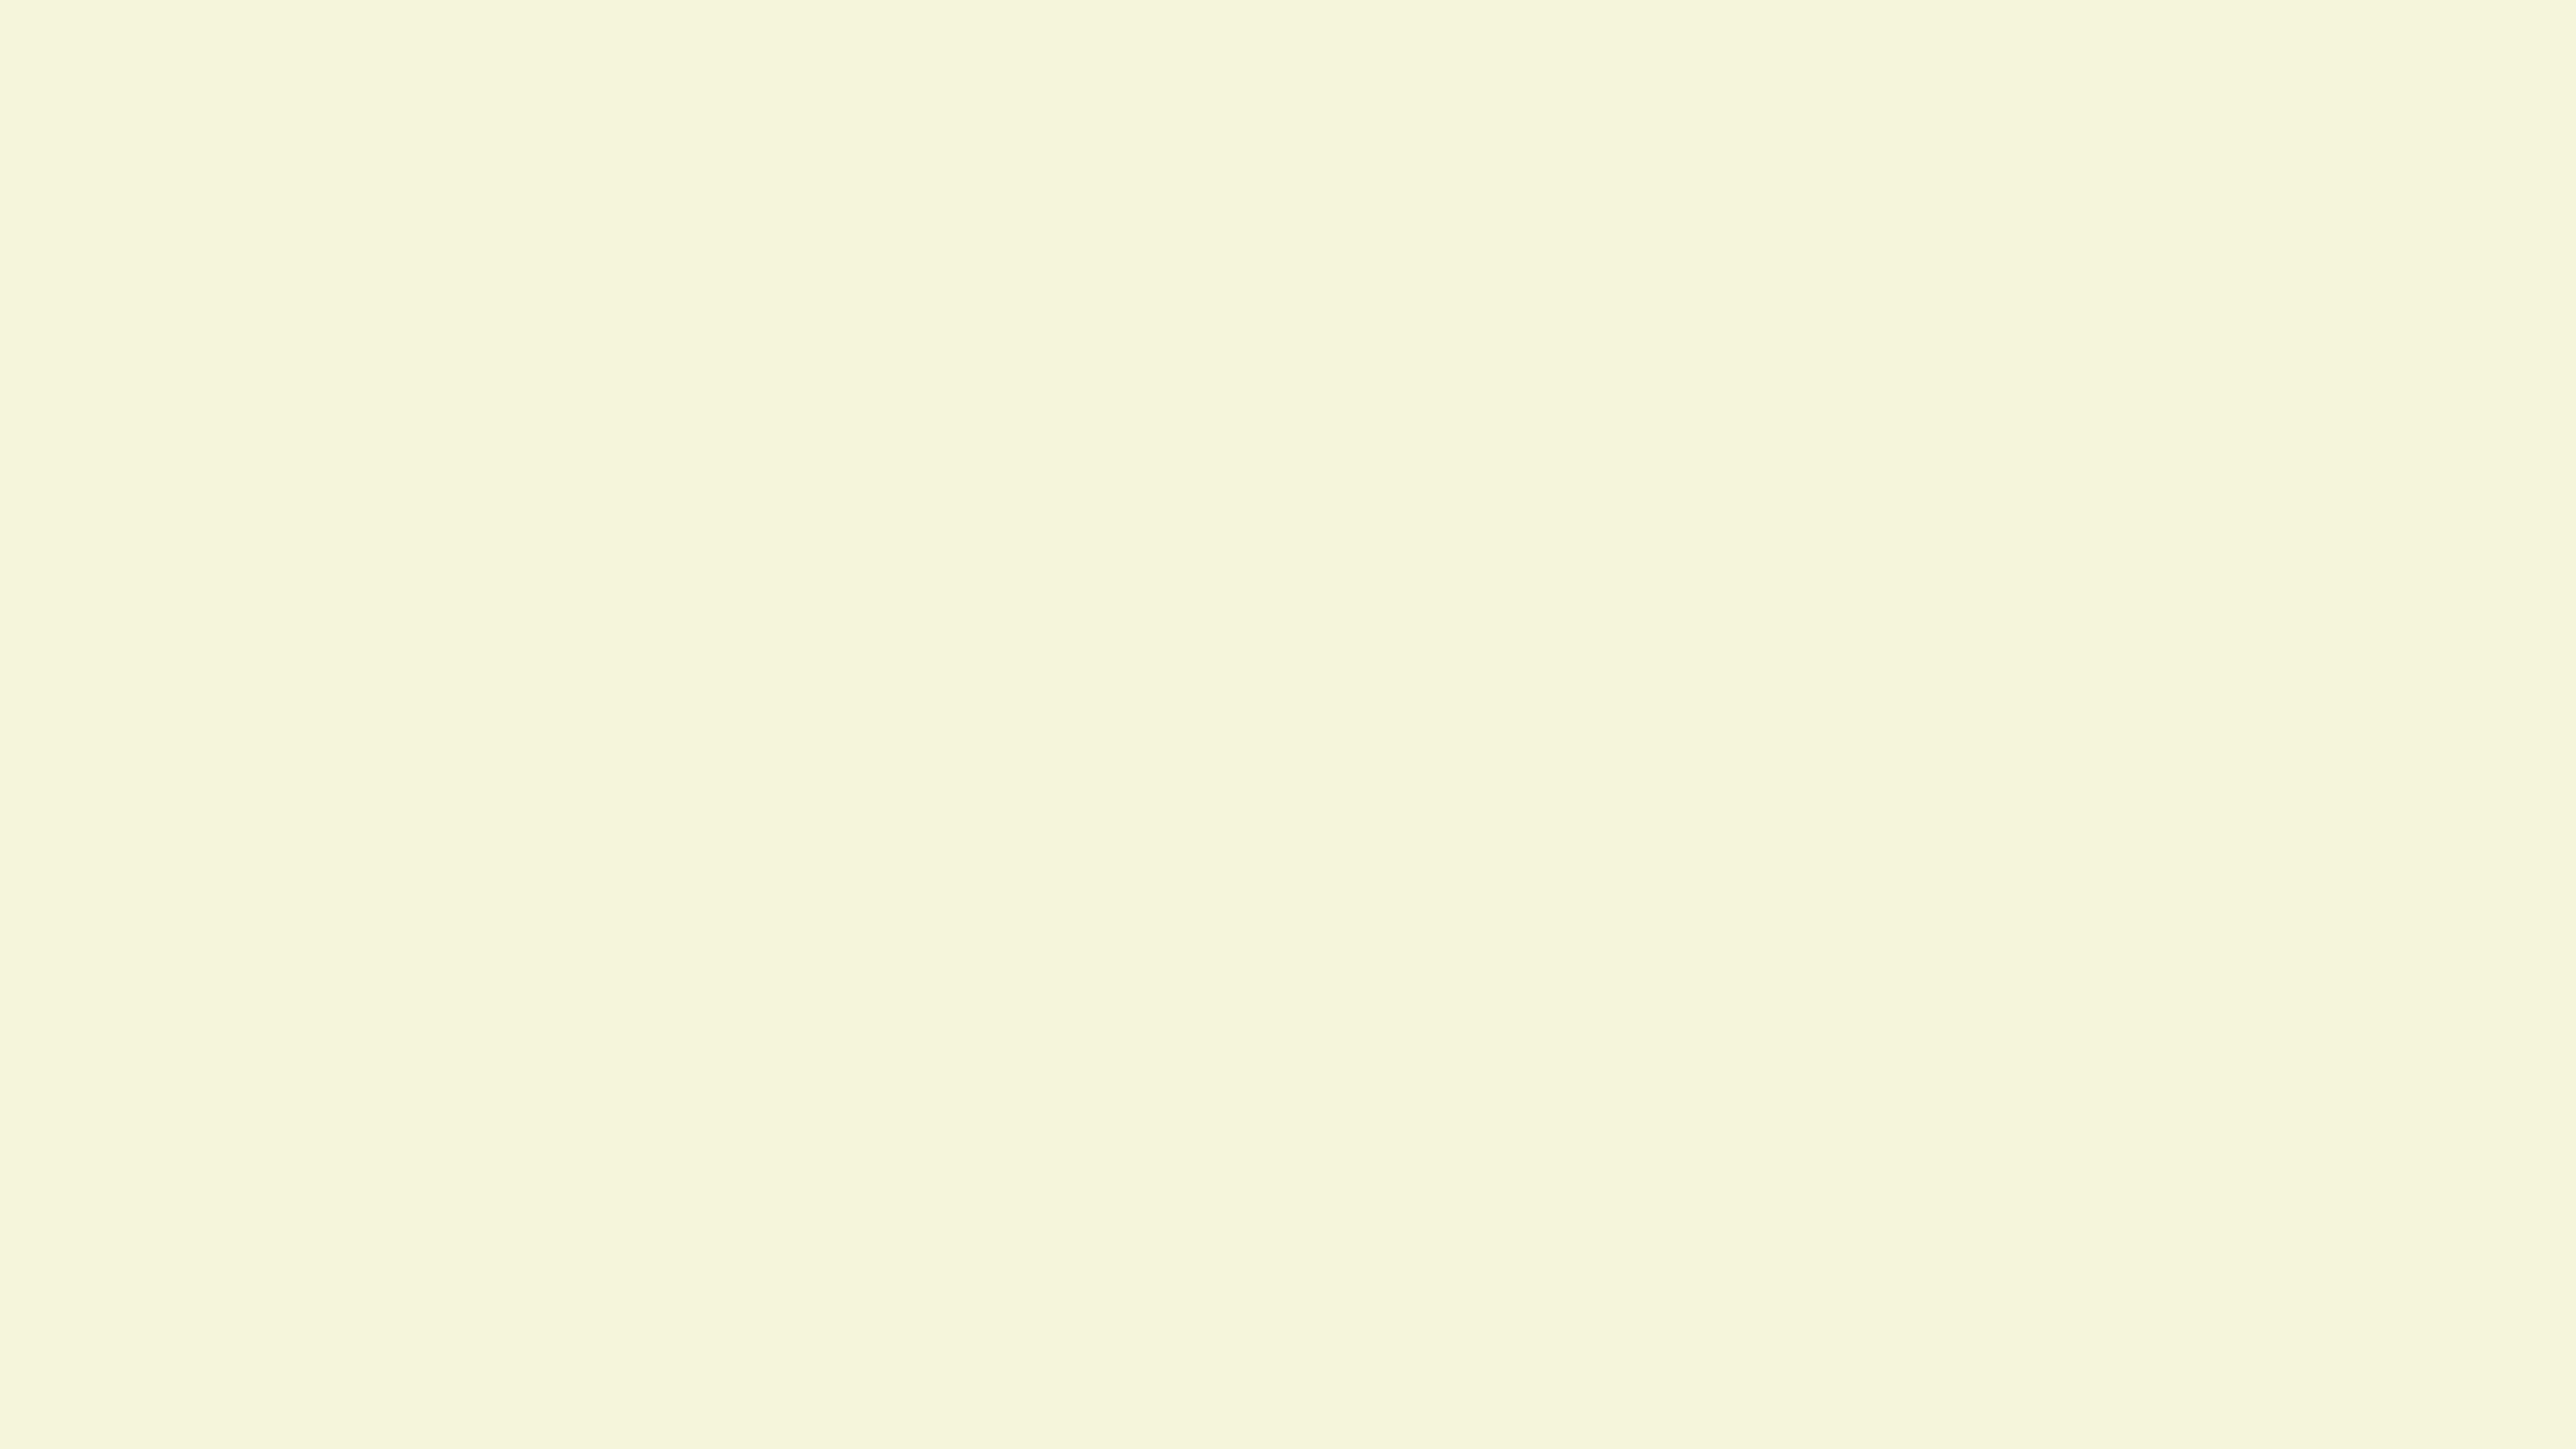 4096x2304 Beige Solid Color Background